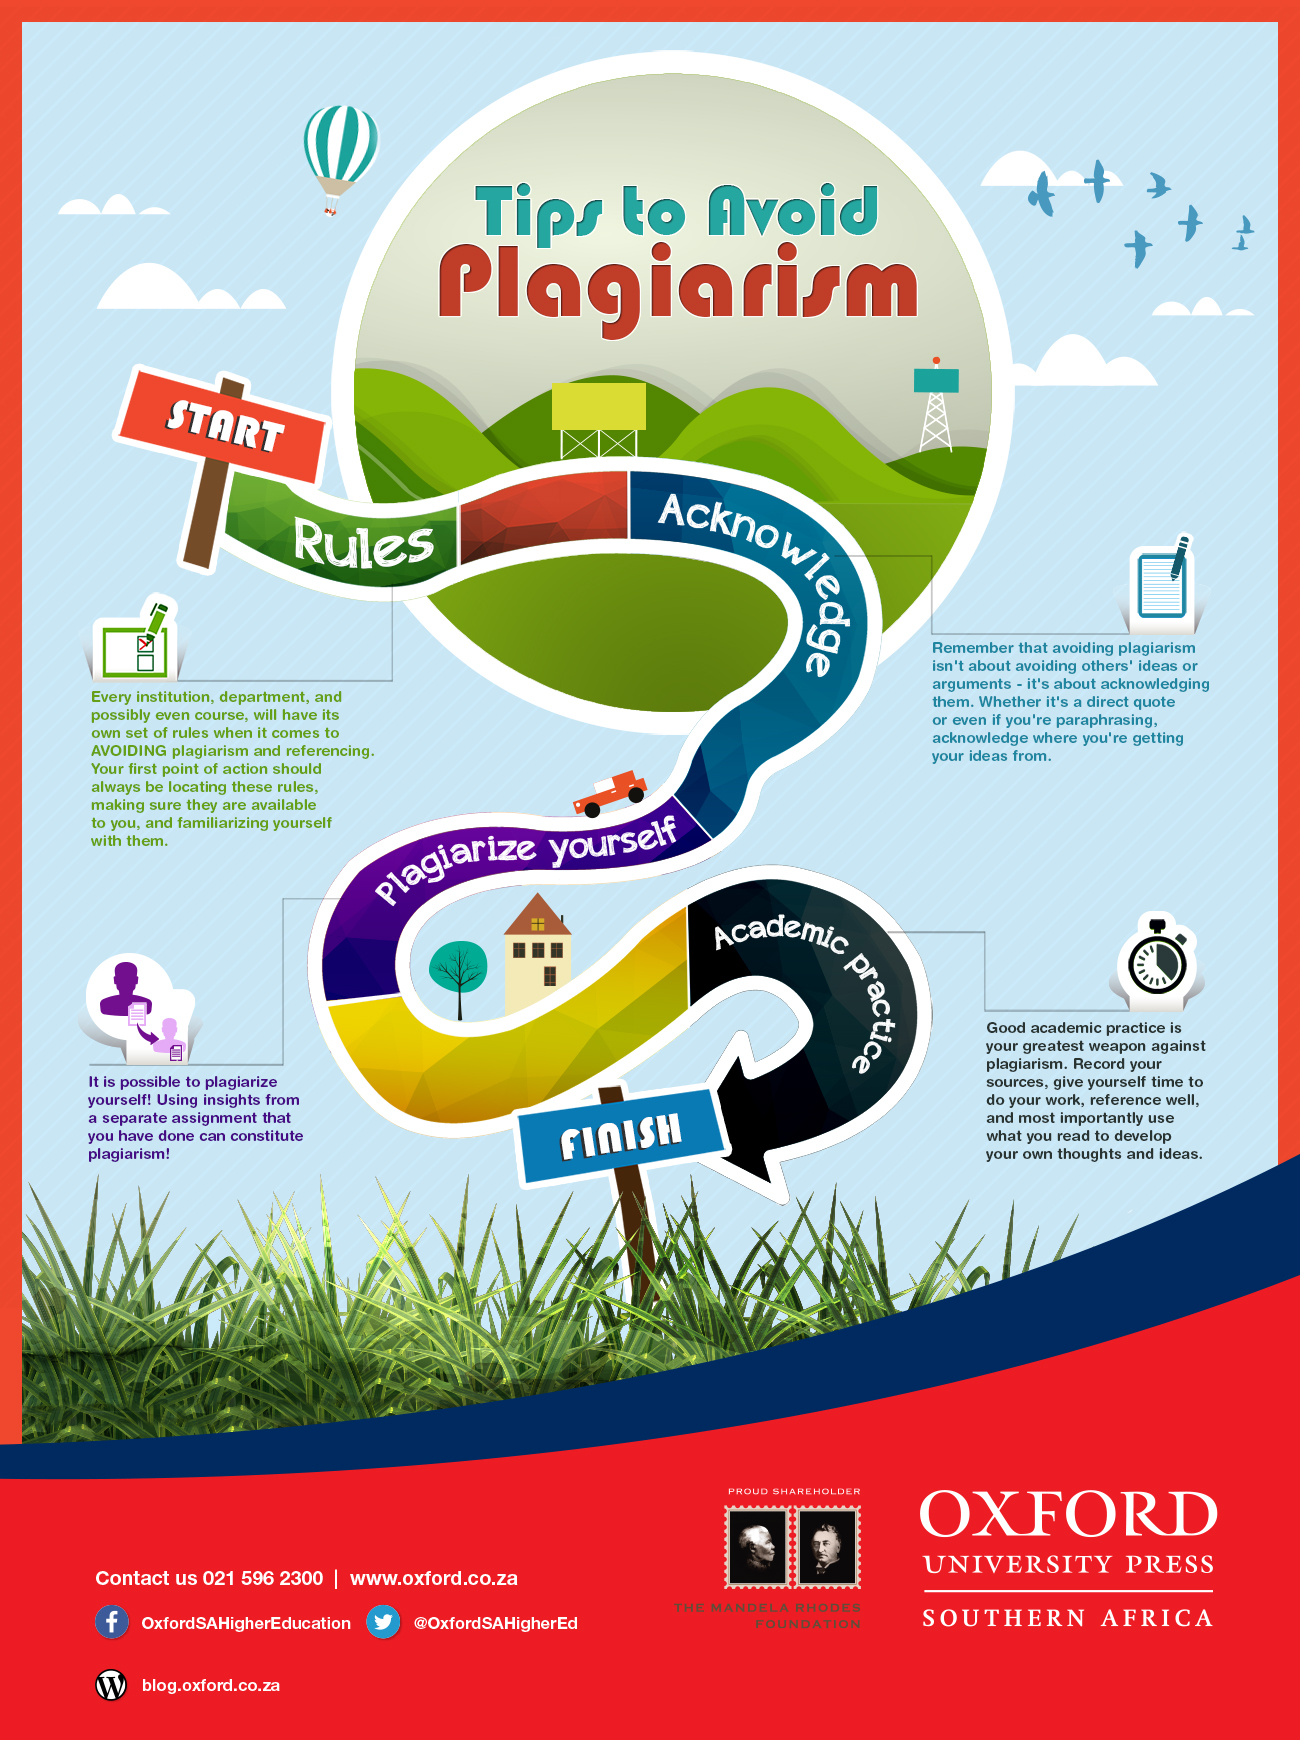 hed_dig_9989_15_tips to avoid plagiarism